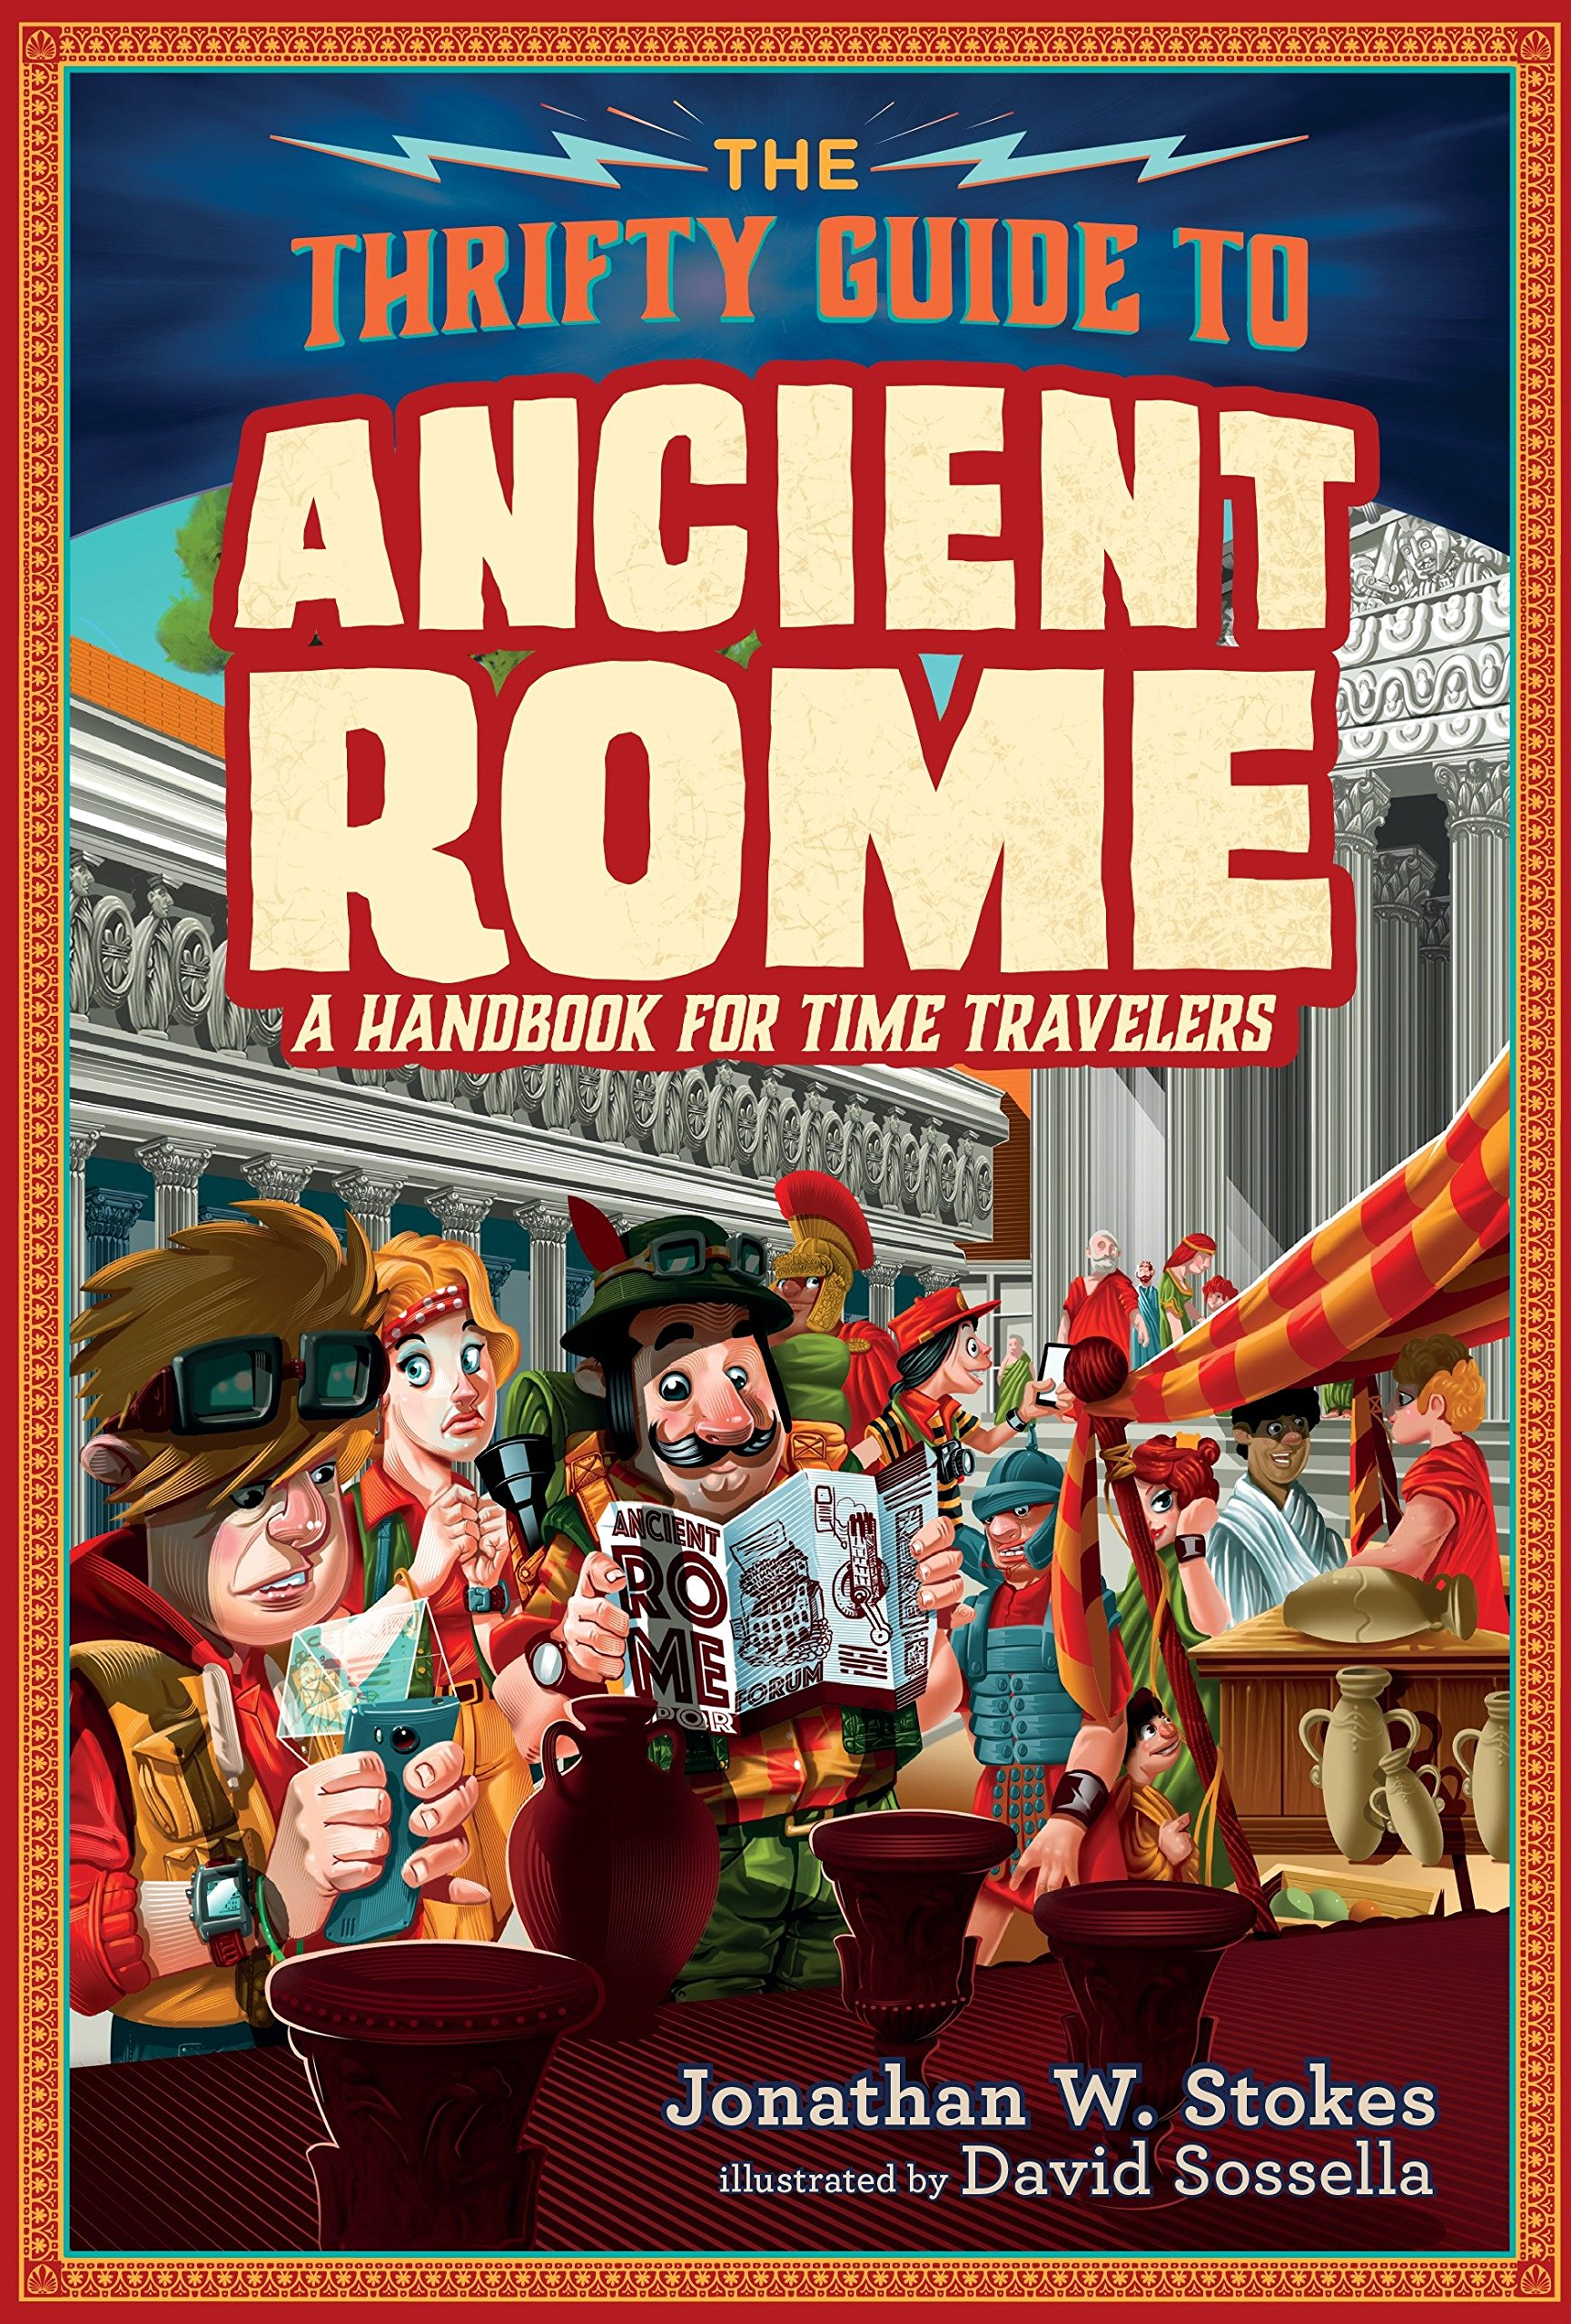 The Thrifty Guide to Ancient Rome (The Thrifty Guides) ebook